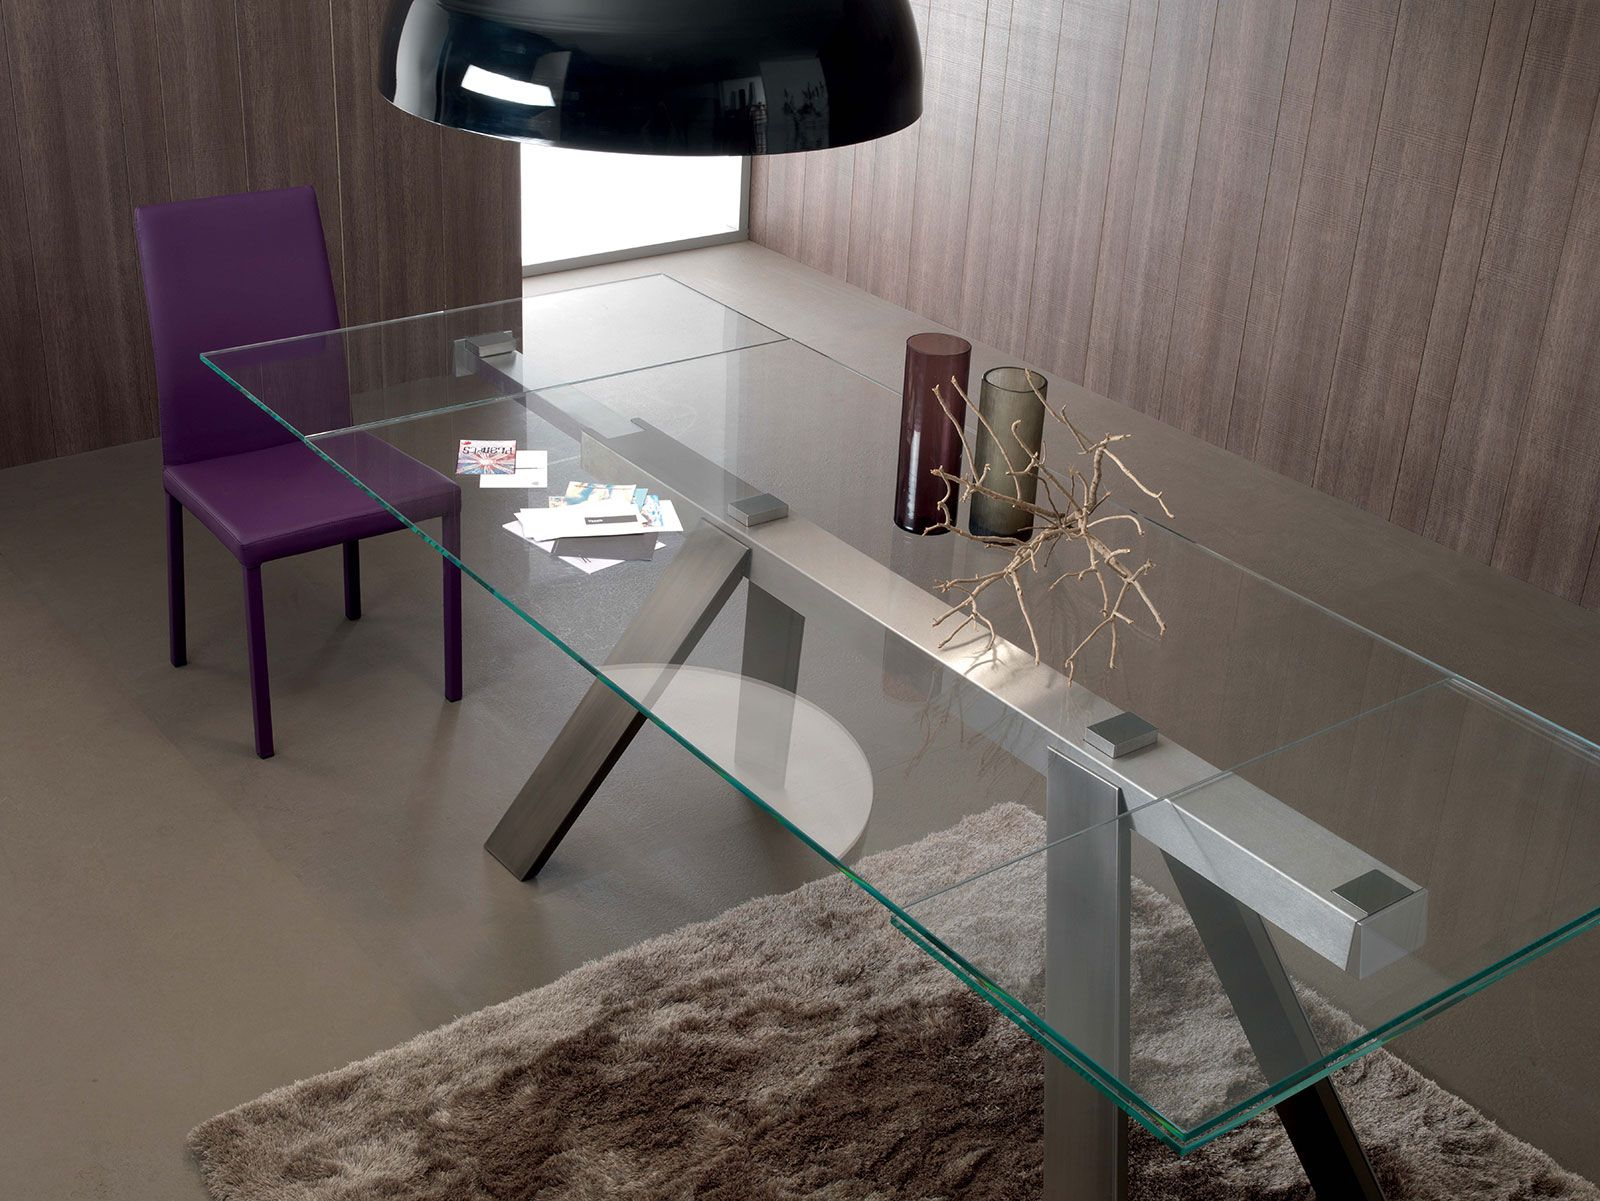 Space saving dining tables wenge minima simple aluminium dining table - Furniture Shops Design Homestore Italia Manufacturers Quality Websites Extensible Table Glass Italian Dining Living Room Legs